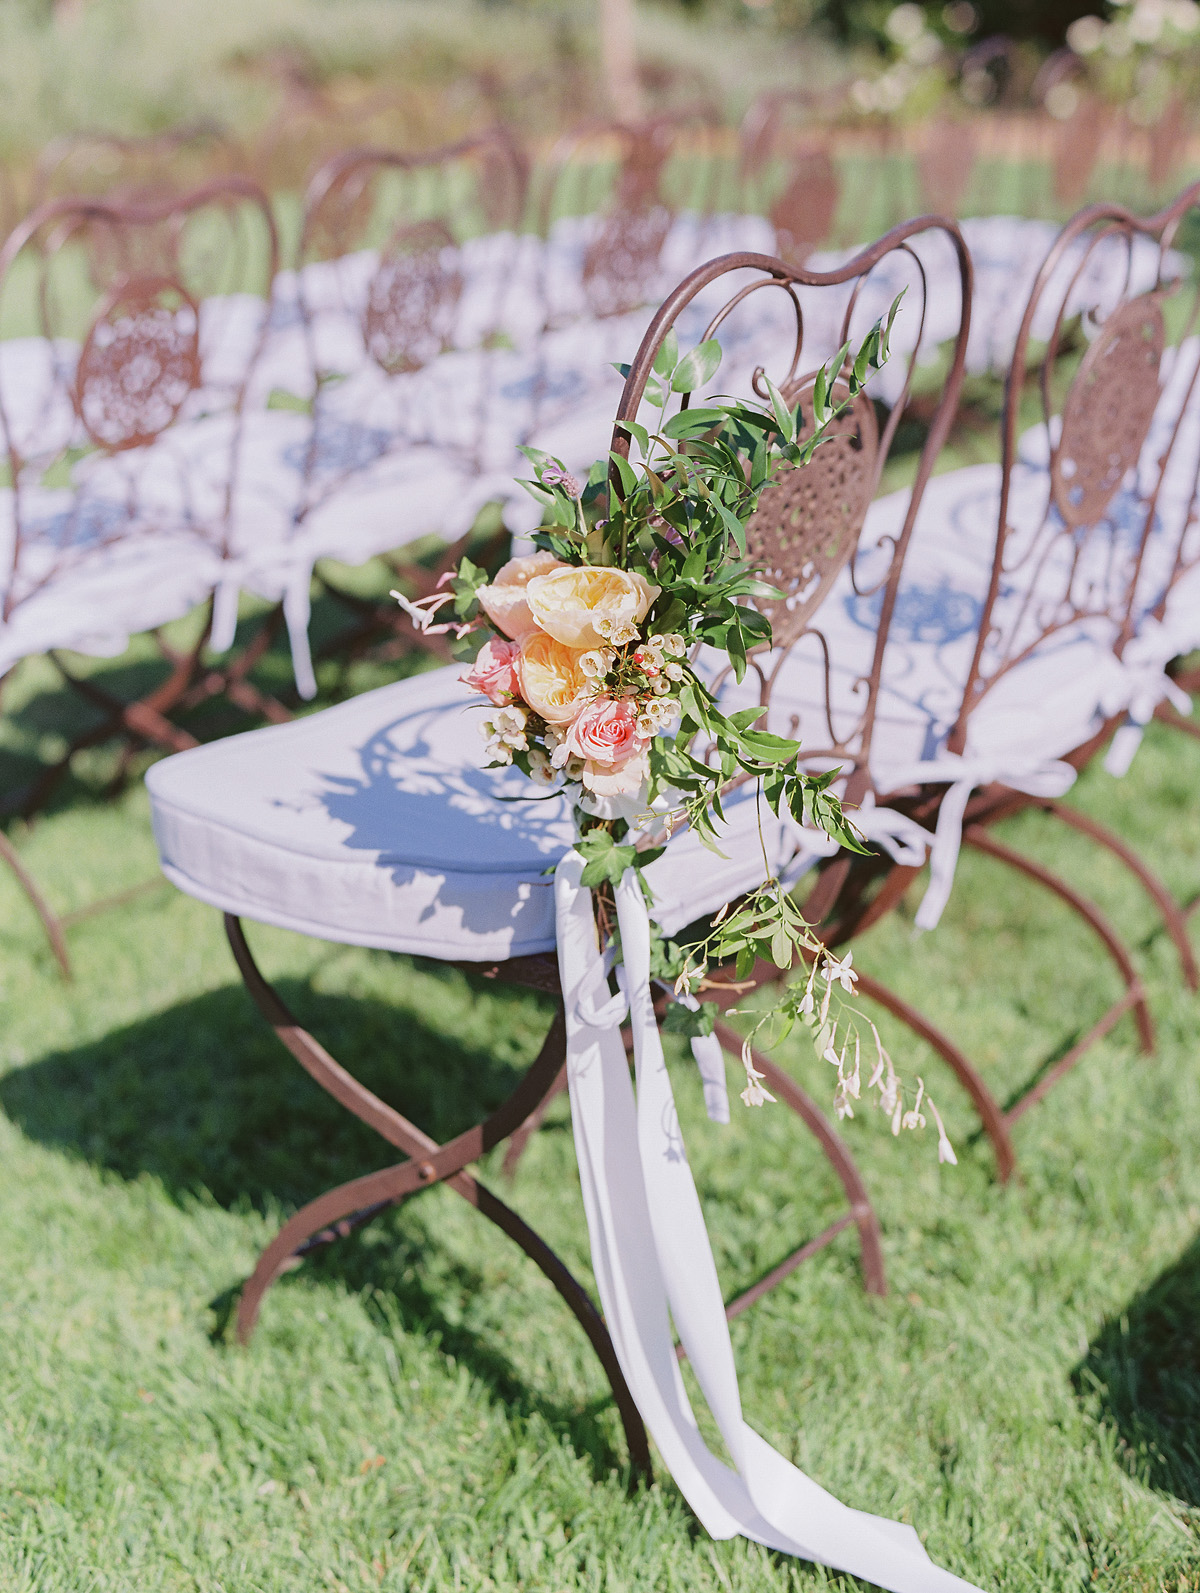 Trend Wrought Iron Chairs at Wedding Ceremony